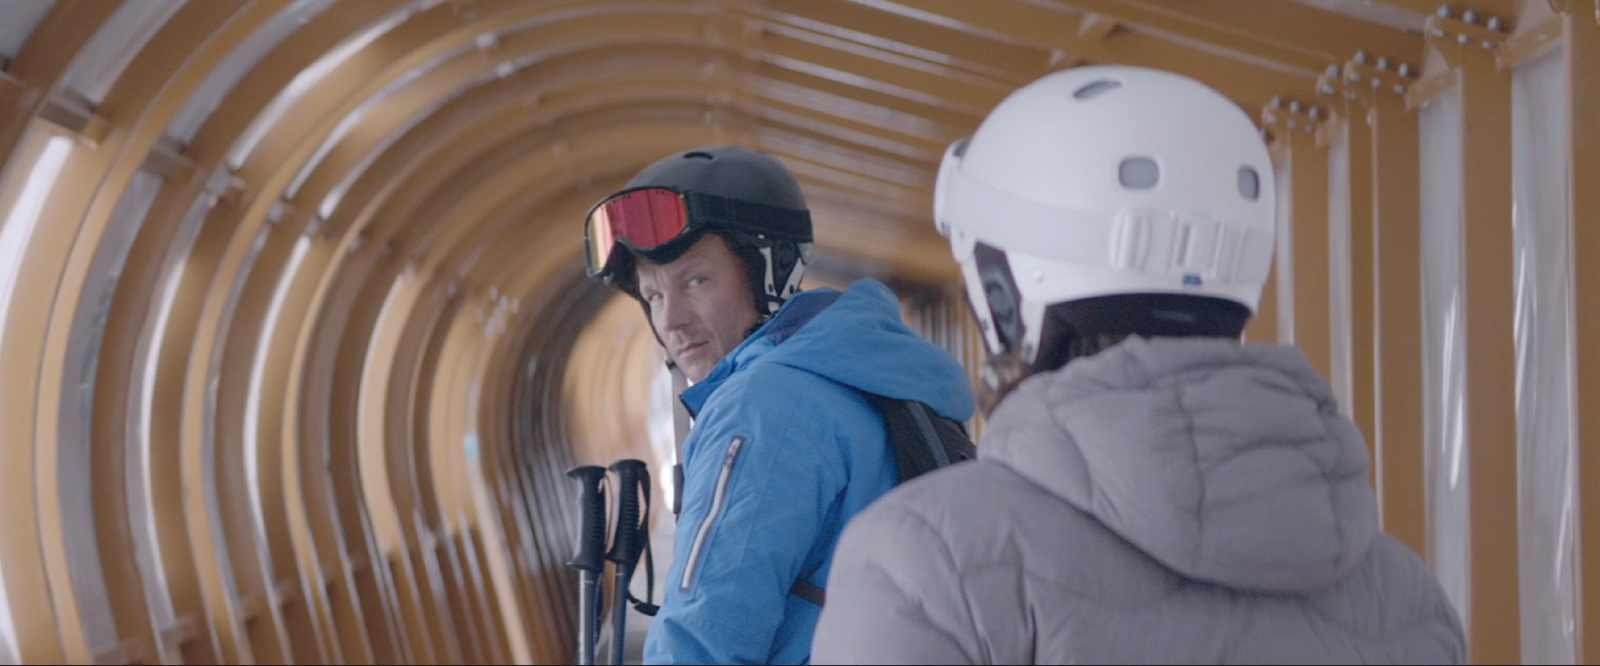 Force Majeure film-1